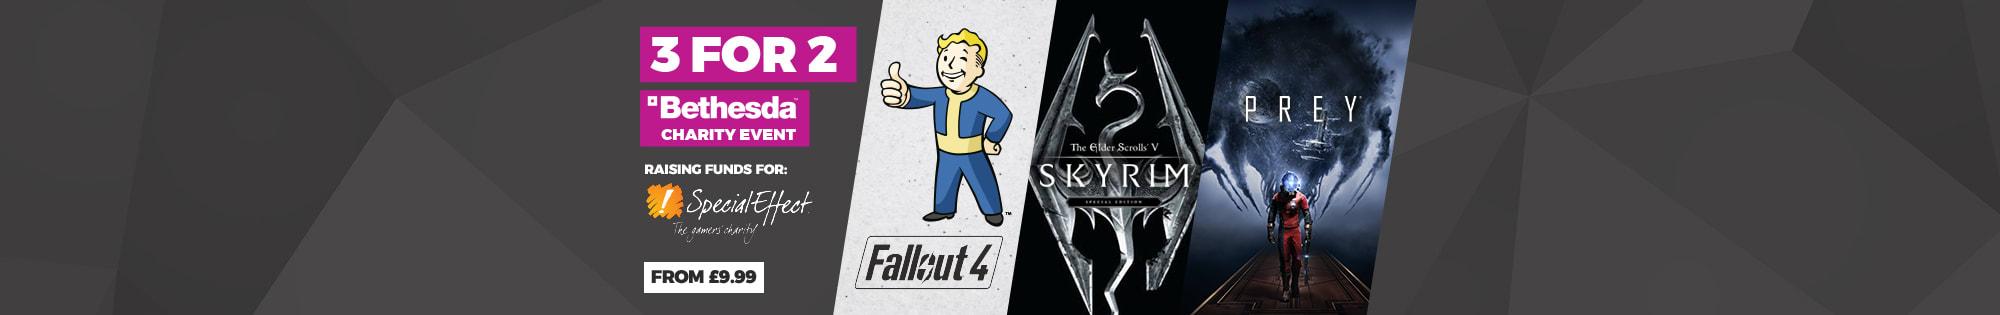 Bethesda 3 for 2 - Homepage Banner